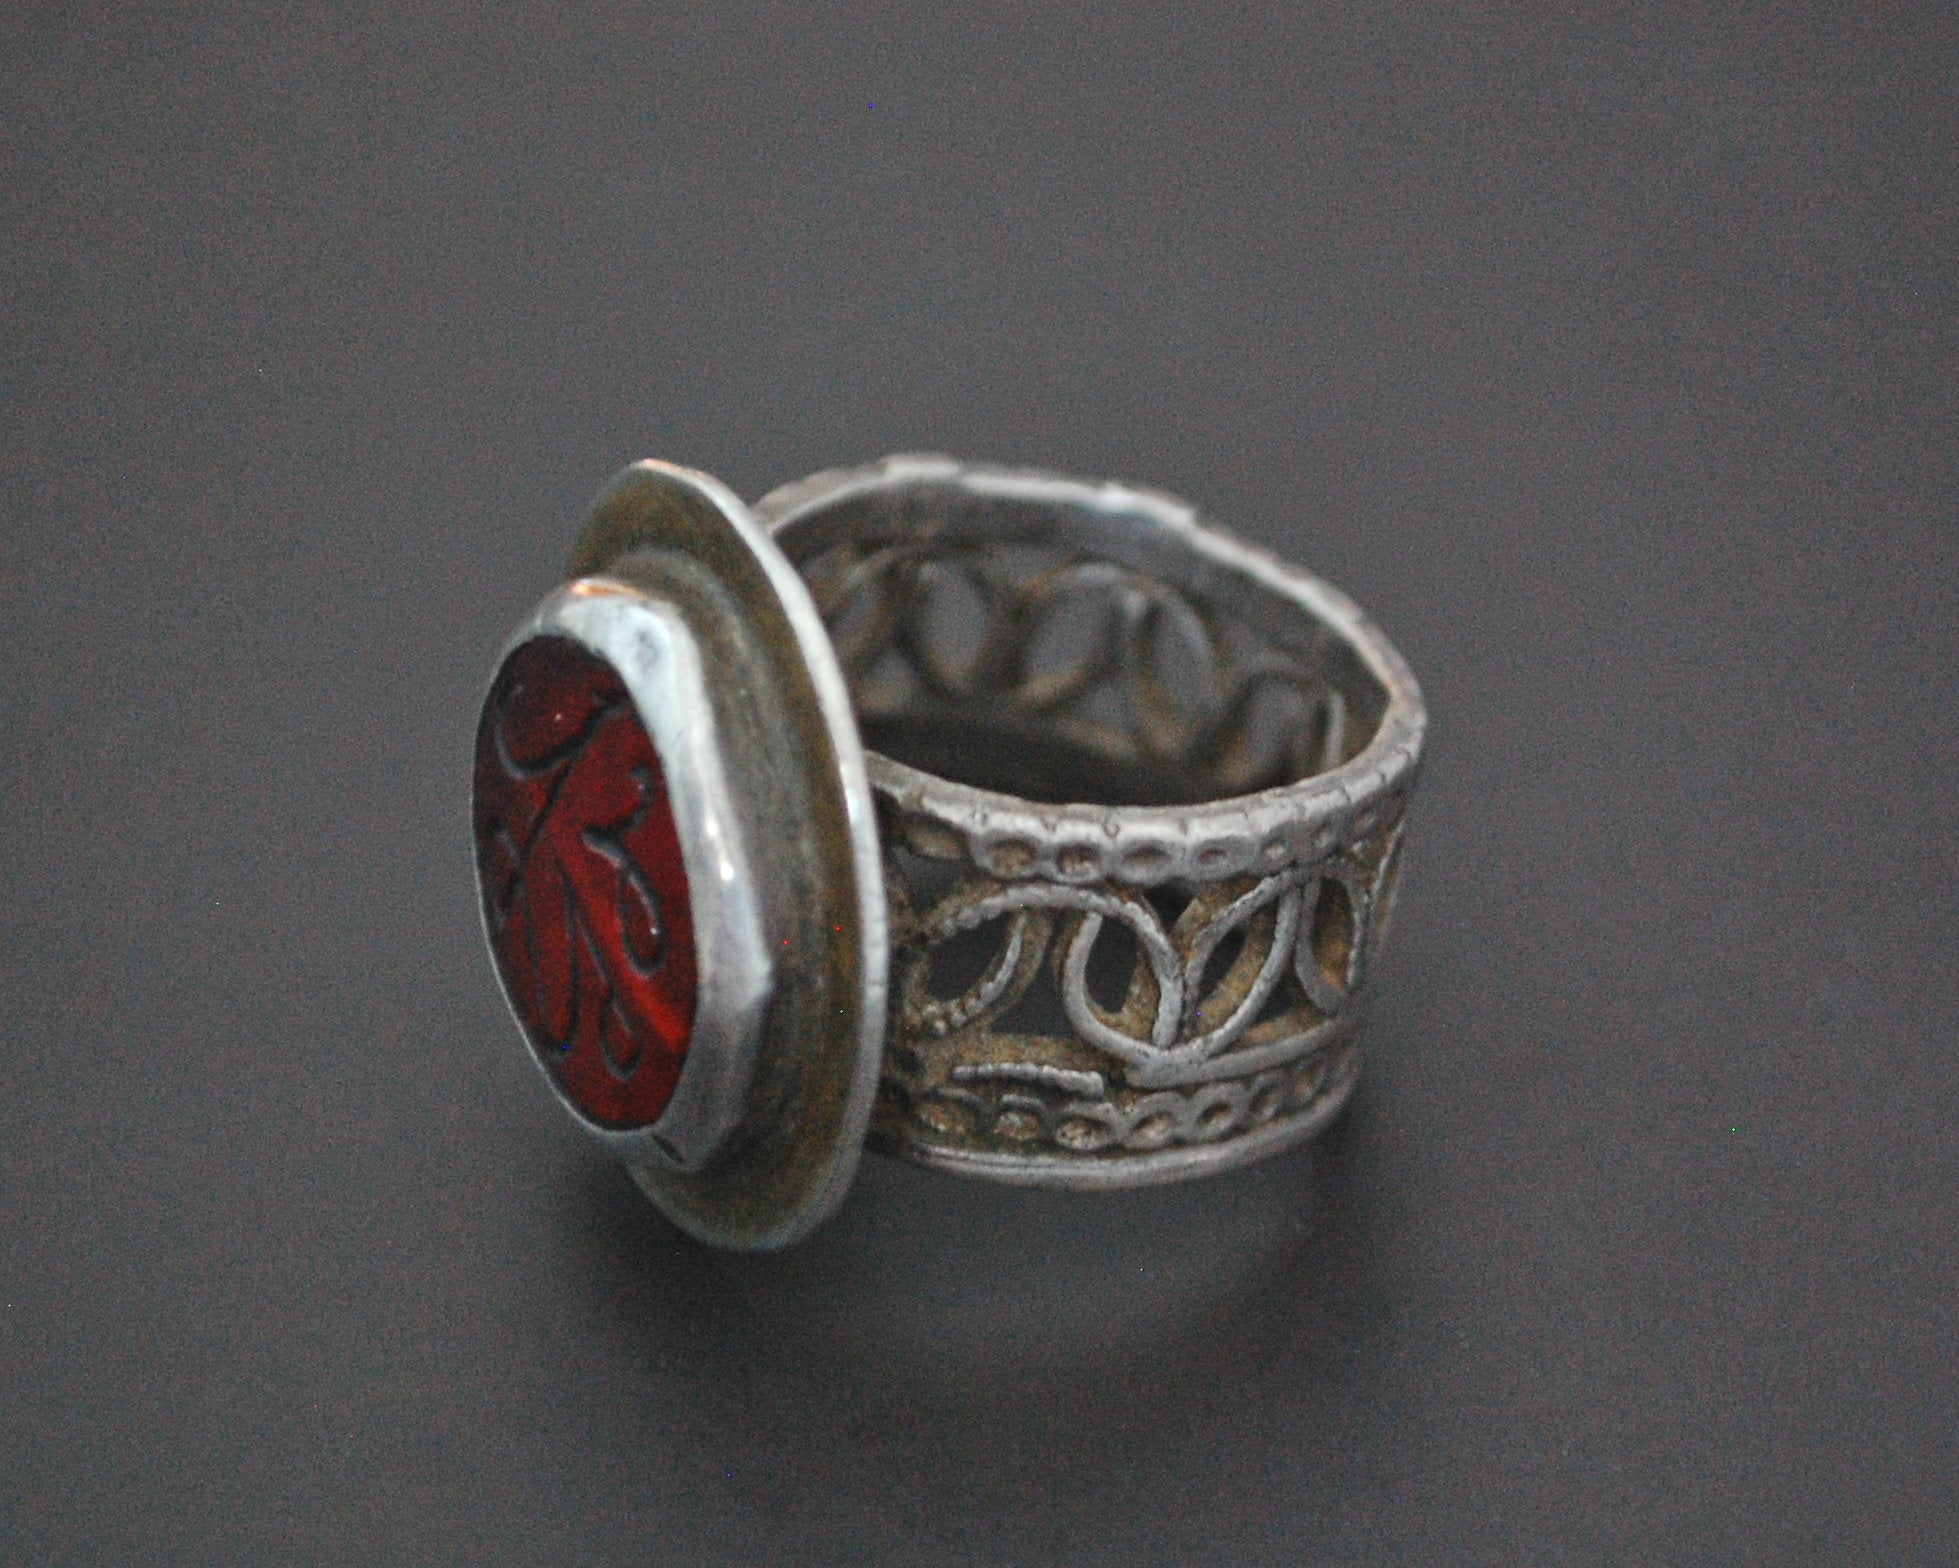 Afghani Silver Ring with Red Glass and Ornate Band - Size 7.5